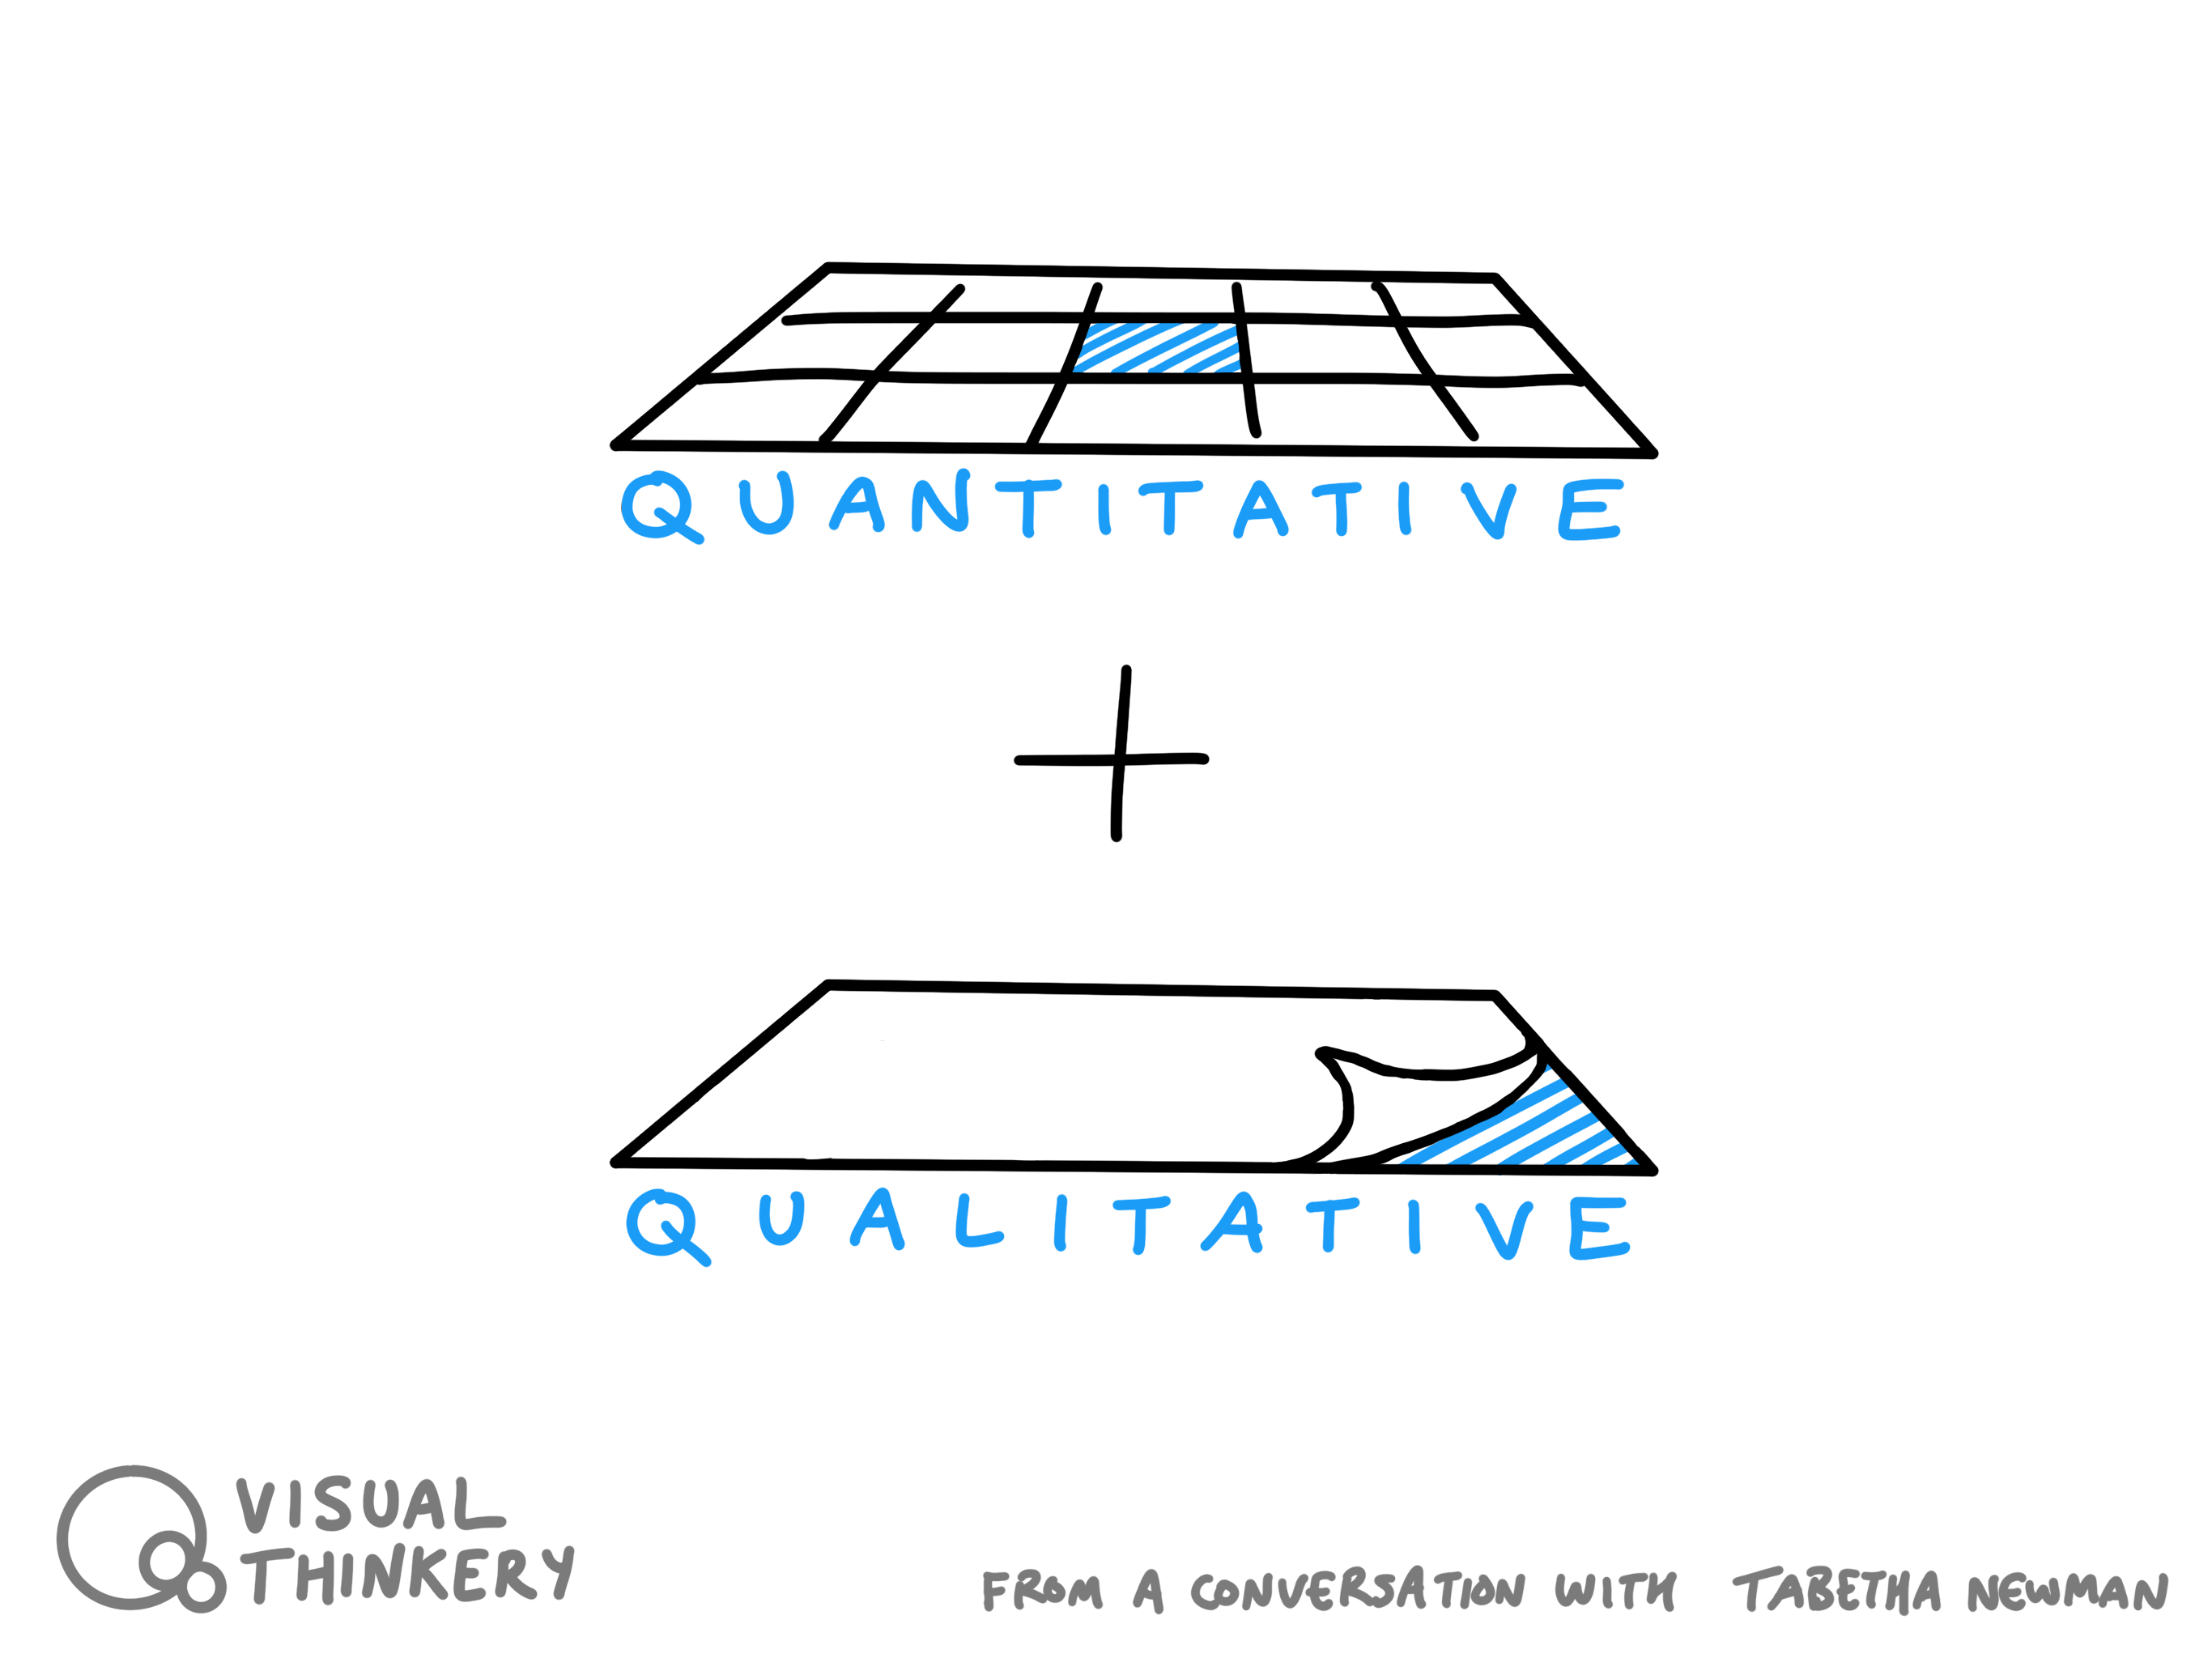 Quantitative and Qualitative analysis